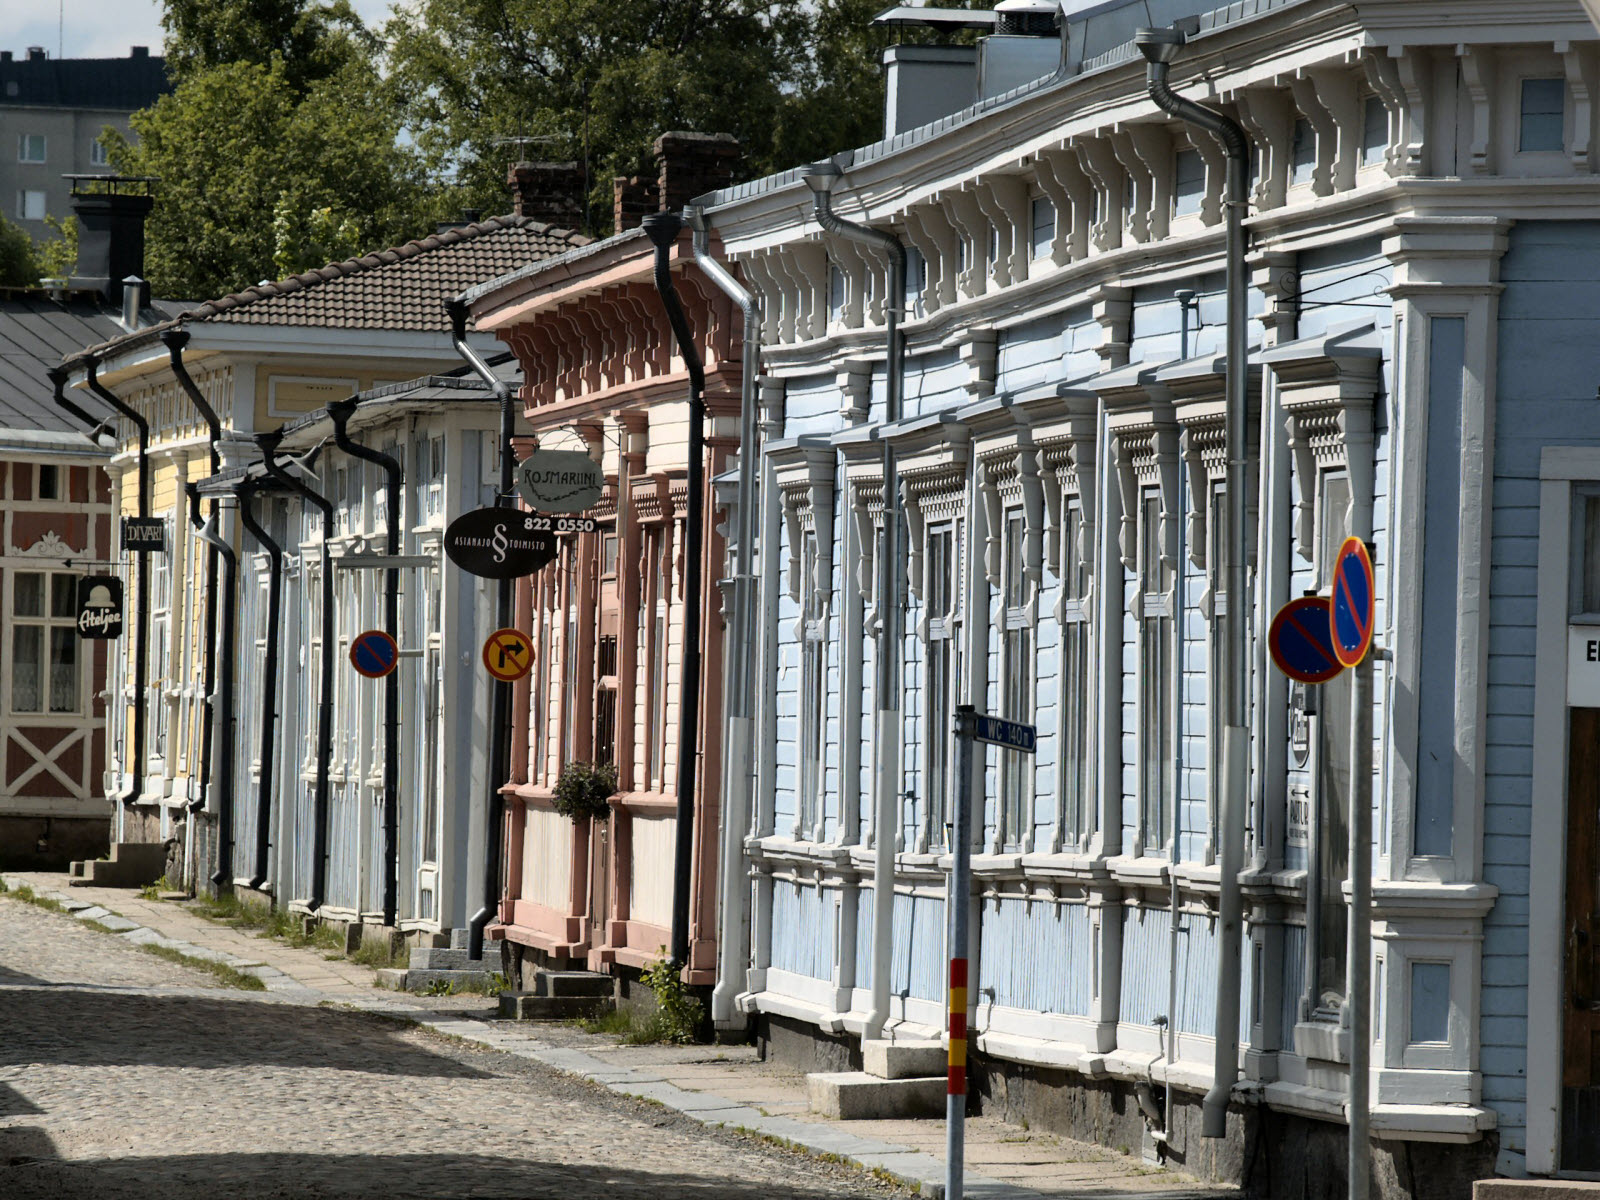 City of Rauma